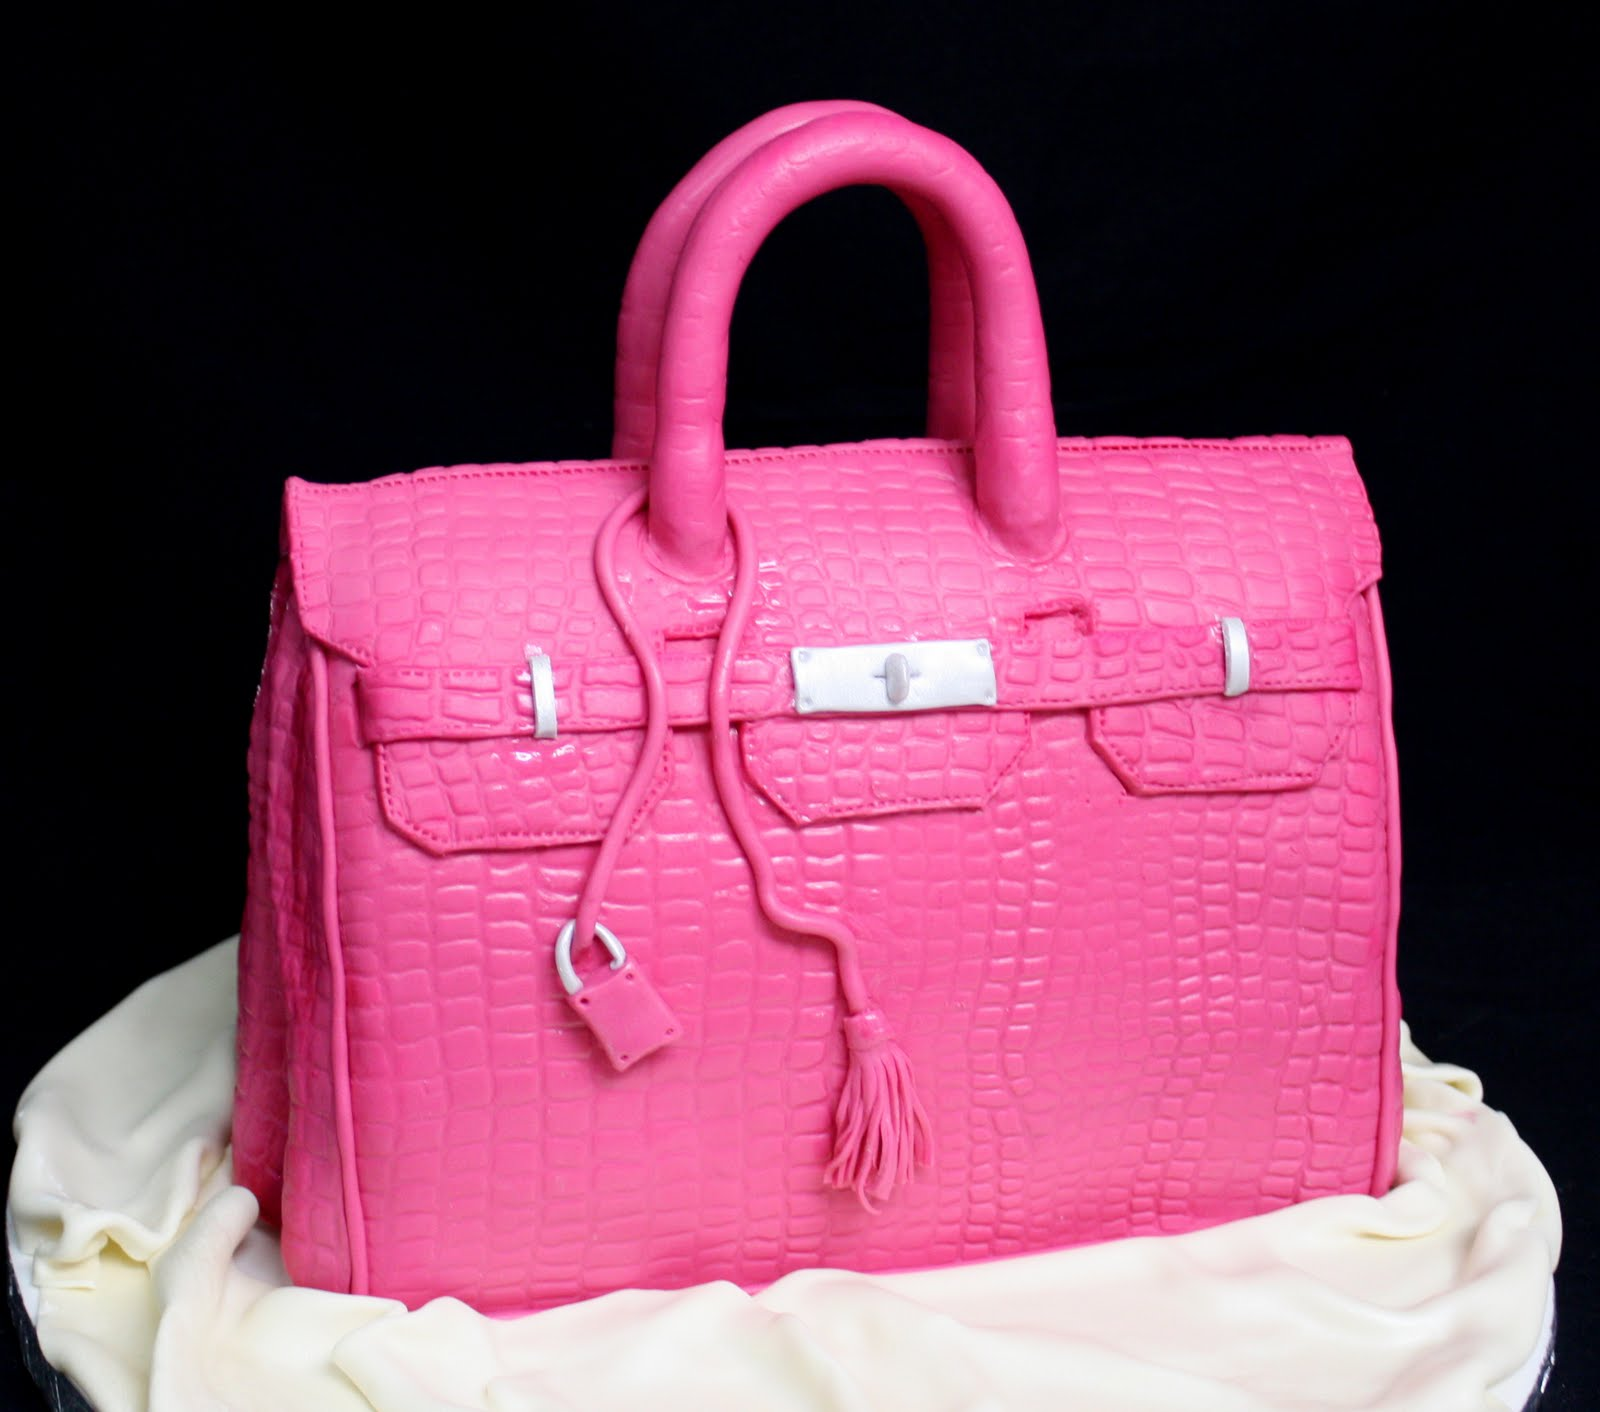 hermes bag cake tutorial